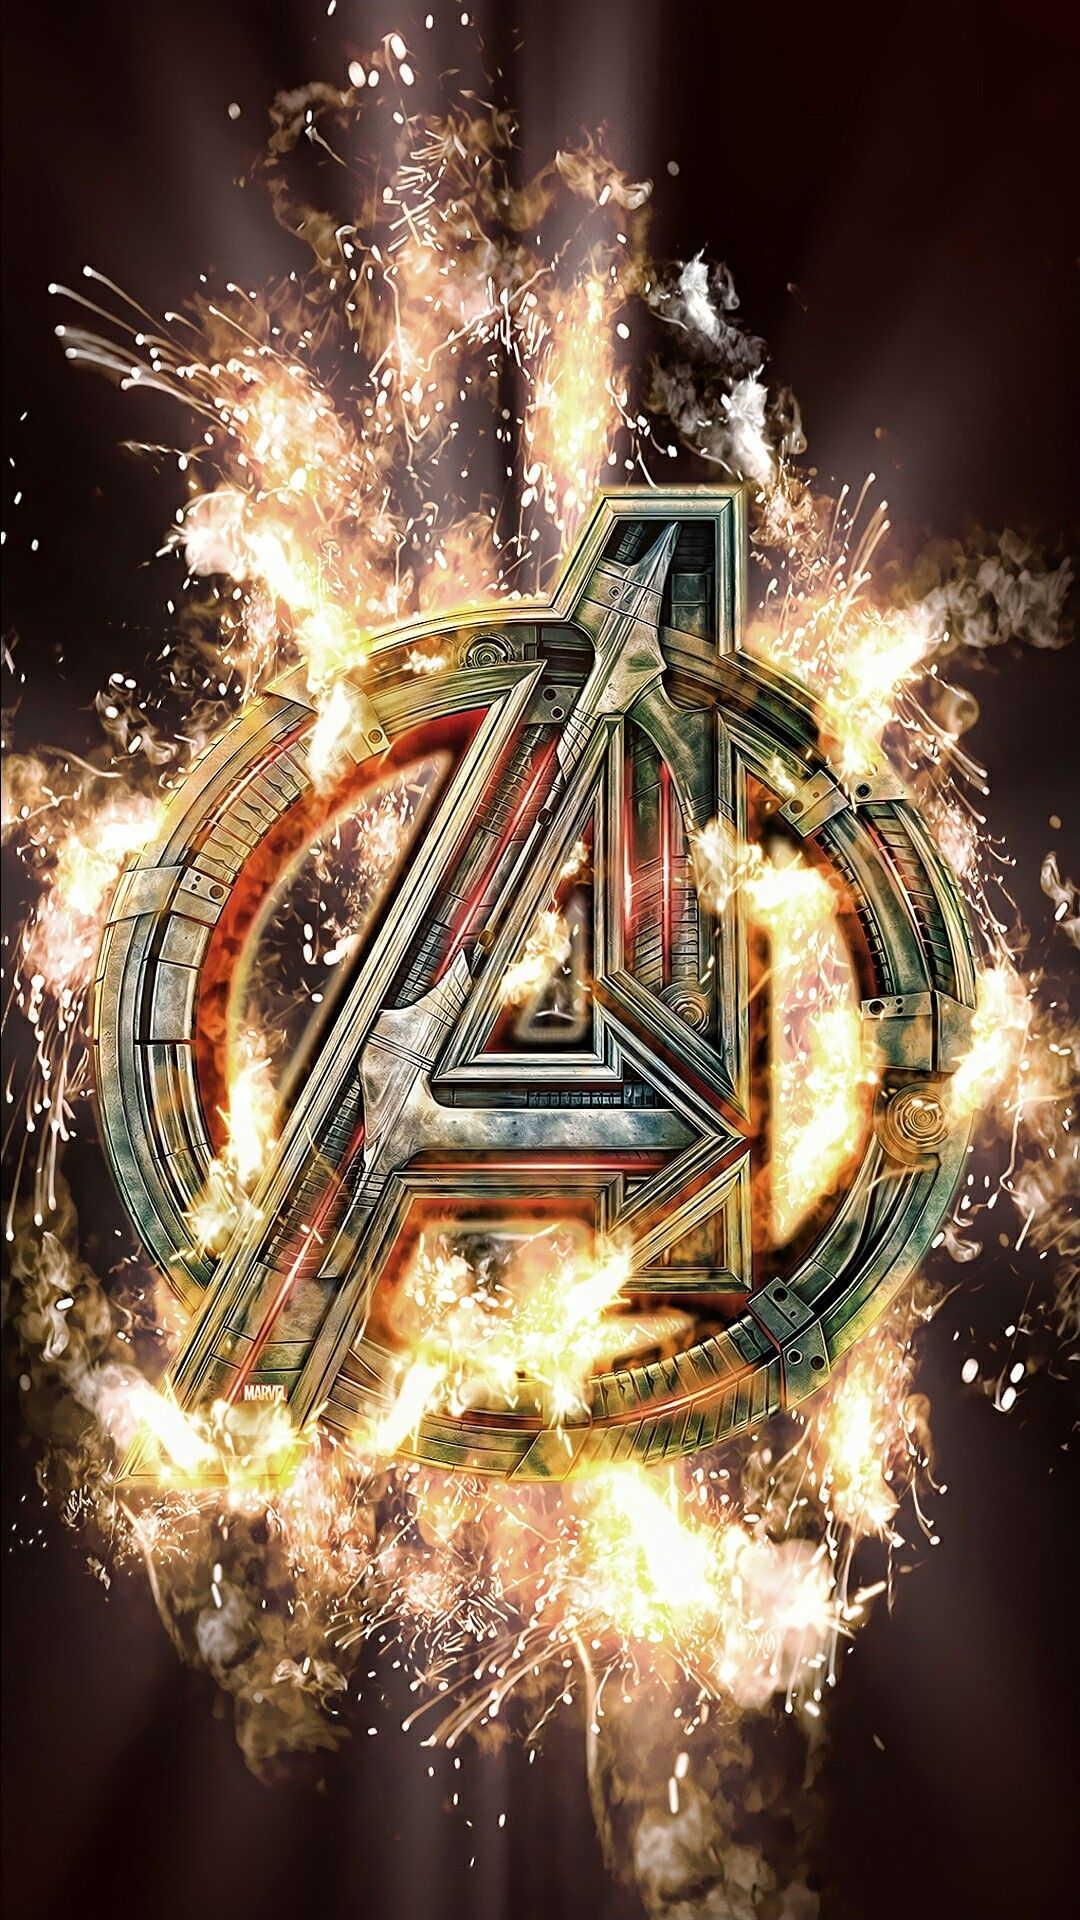 Avengers Wallpaper | Heroes & Villains (RANDOM) | Avengers wallpaper, Marvel, Marvel wallpaper